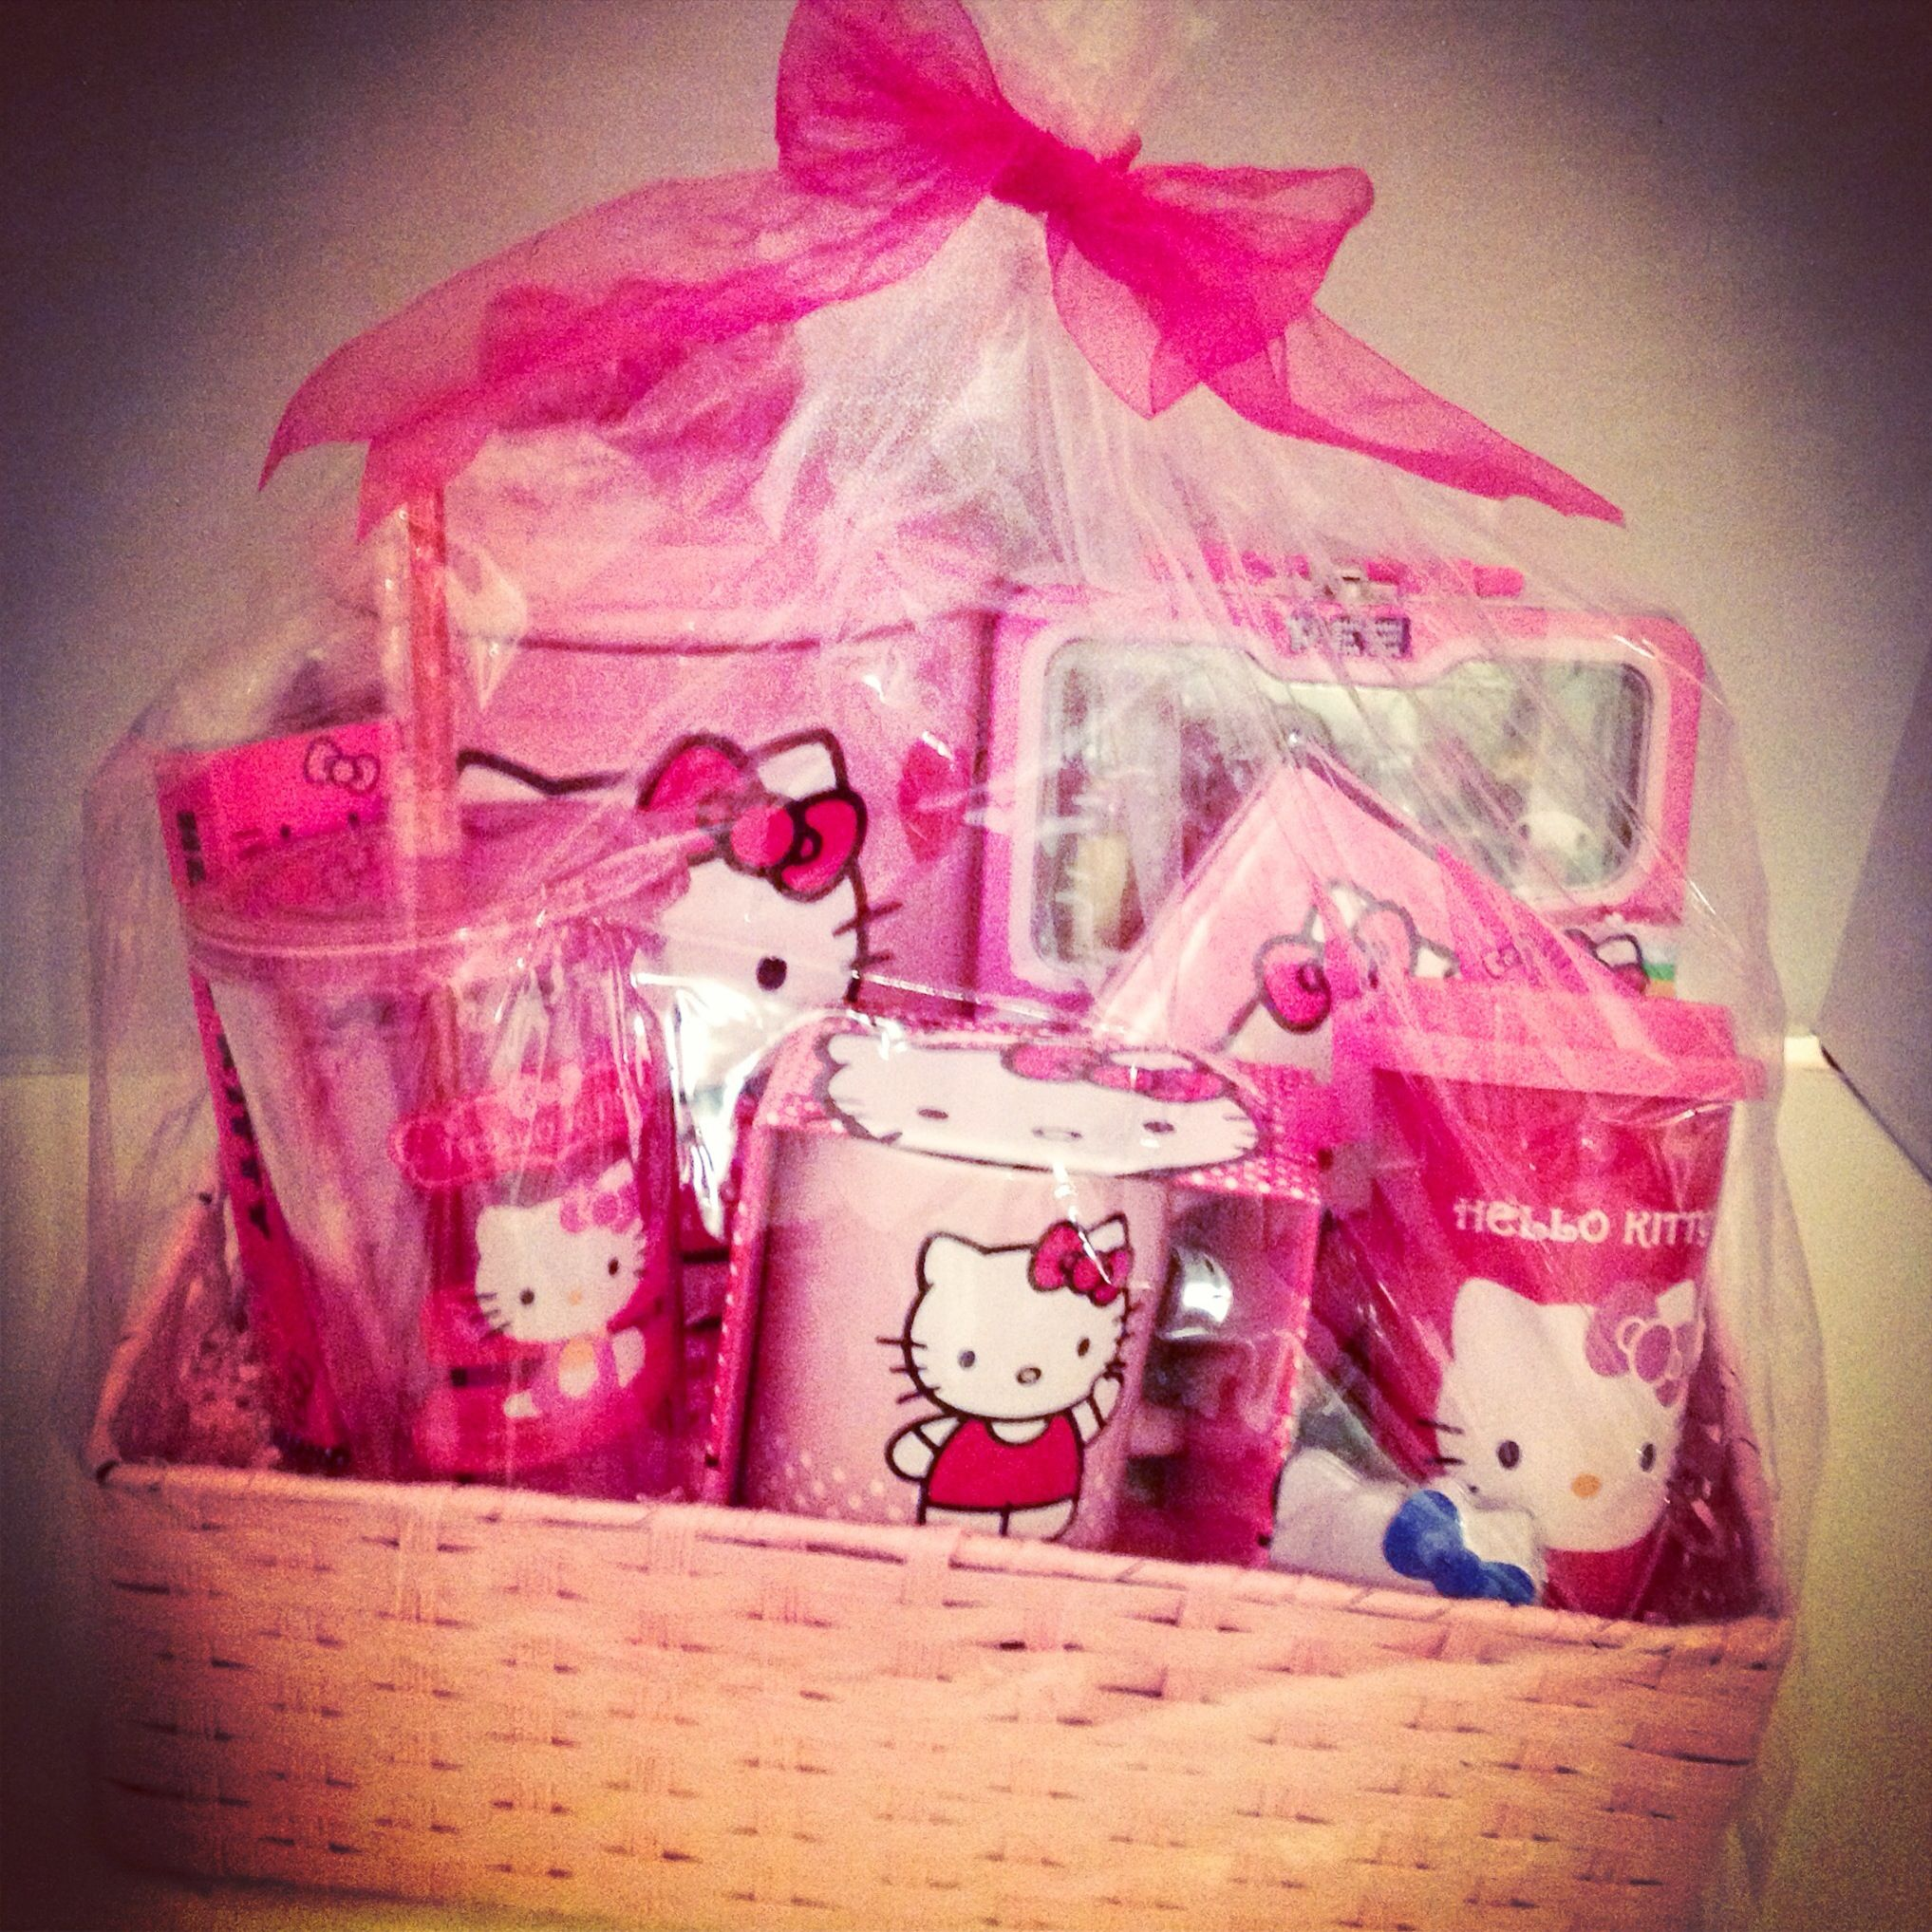 15pc hello kitty gift basket available now at the trulytina 15pc hello kitty gift basket available now at the trulytina boutique negle Images